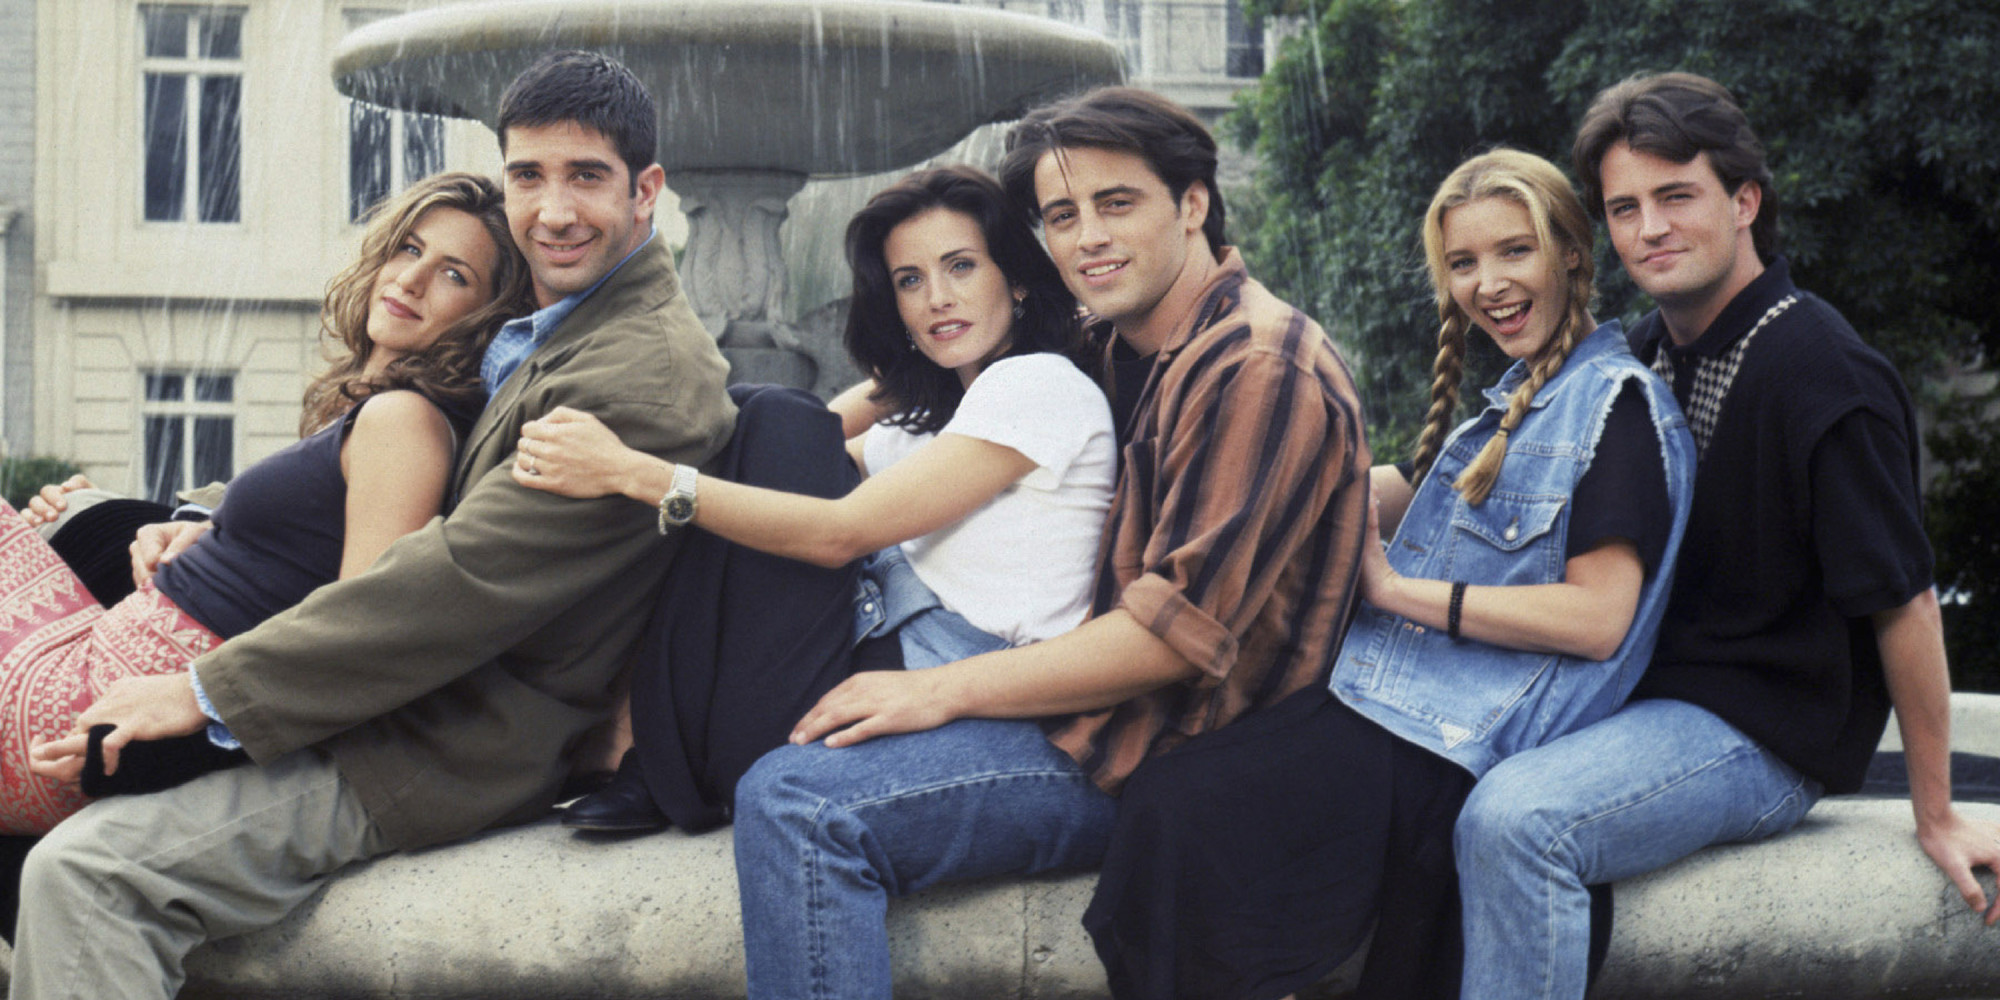 7 Things You Didn't Know About FRIENDS (TV SHOW) 1